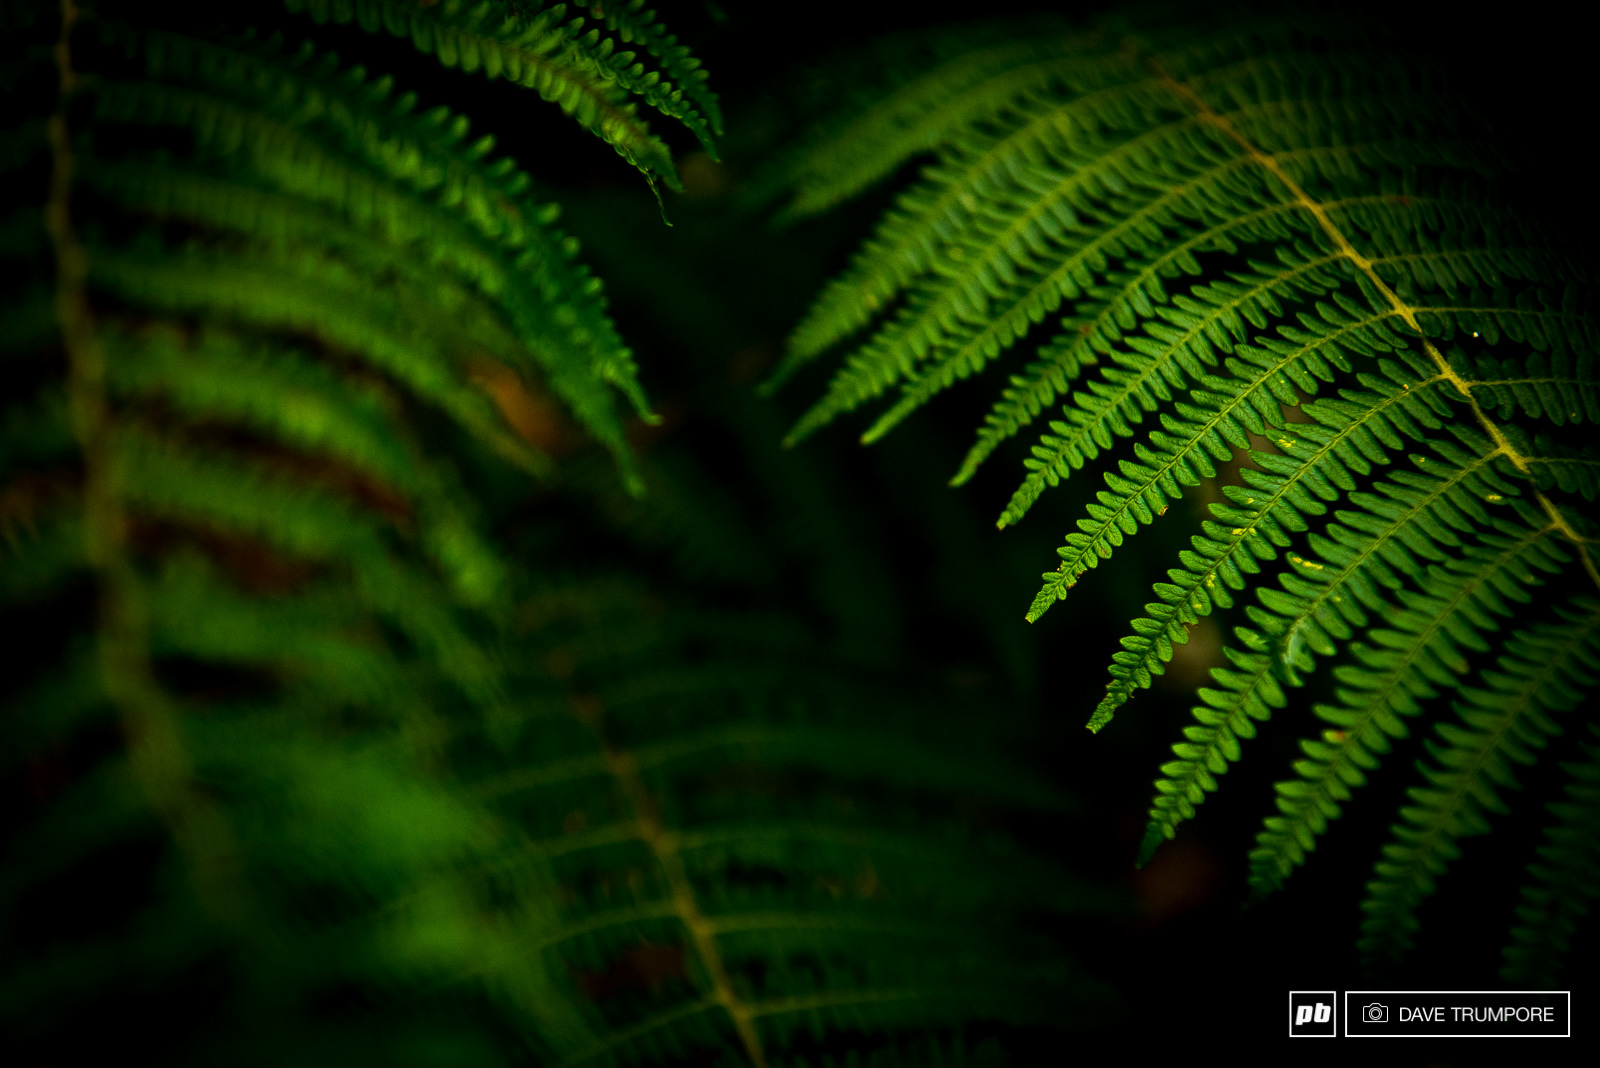 Anytime you see ferns this big and green you can be sure that it rains and rains often.